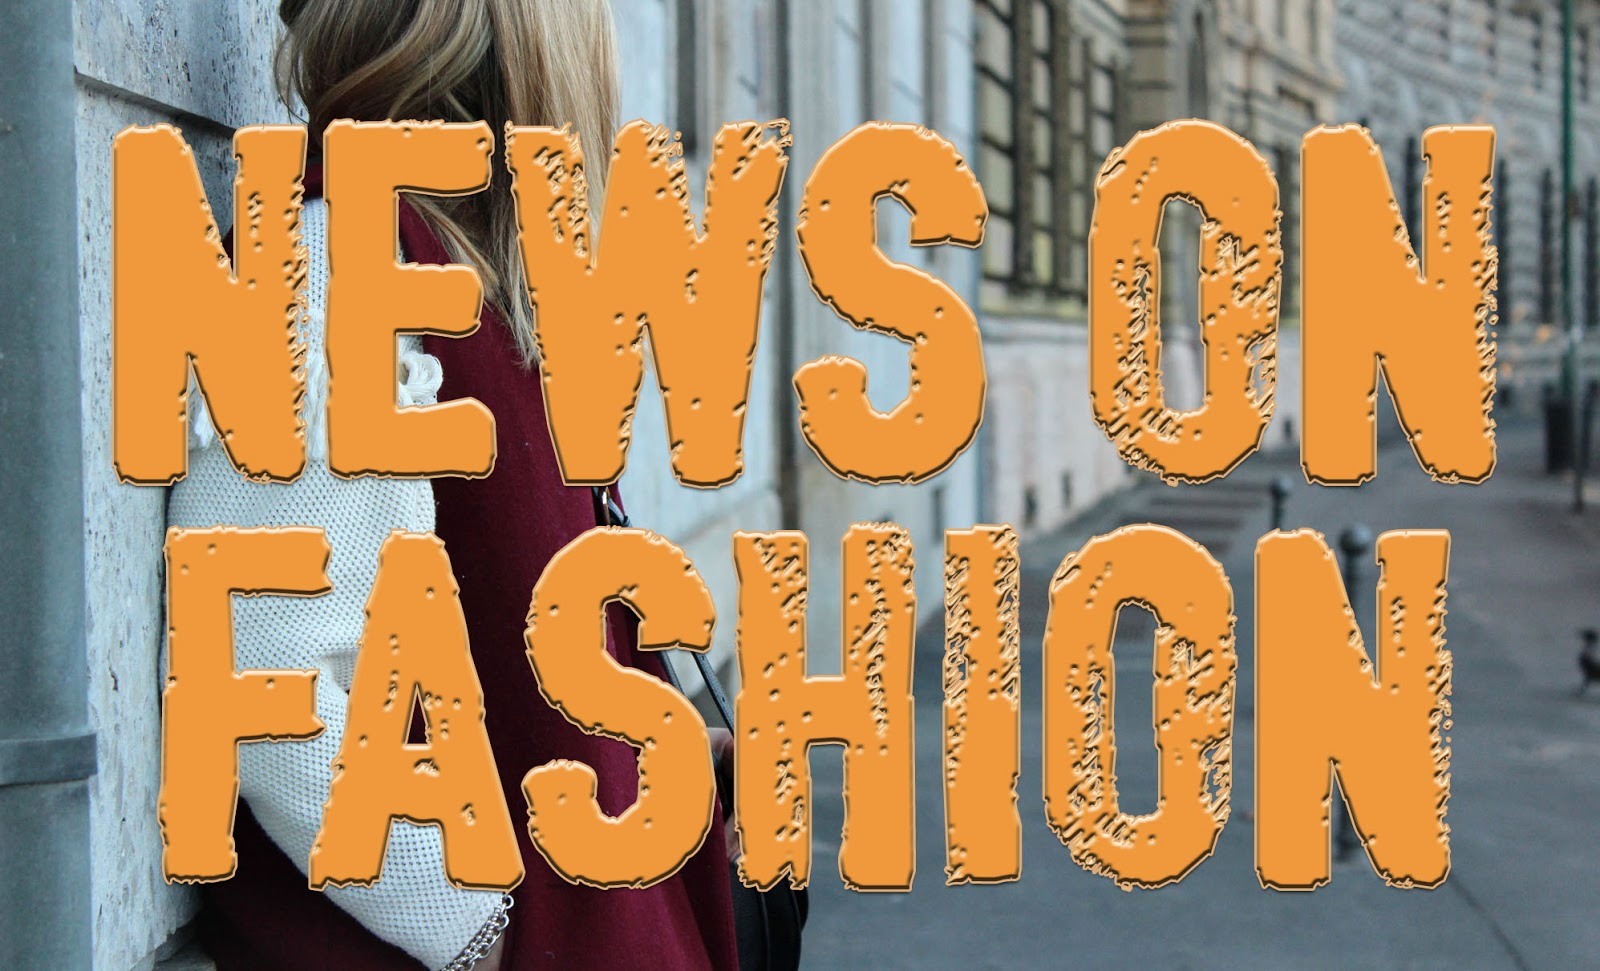 News on Fashion - January 2016